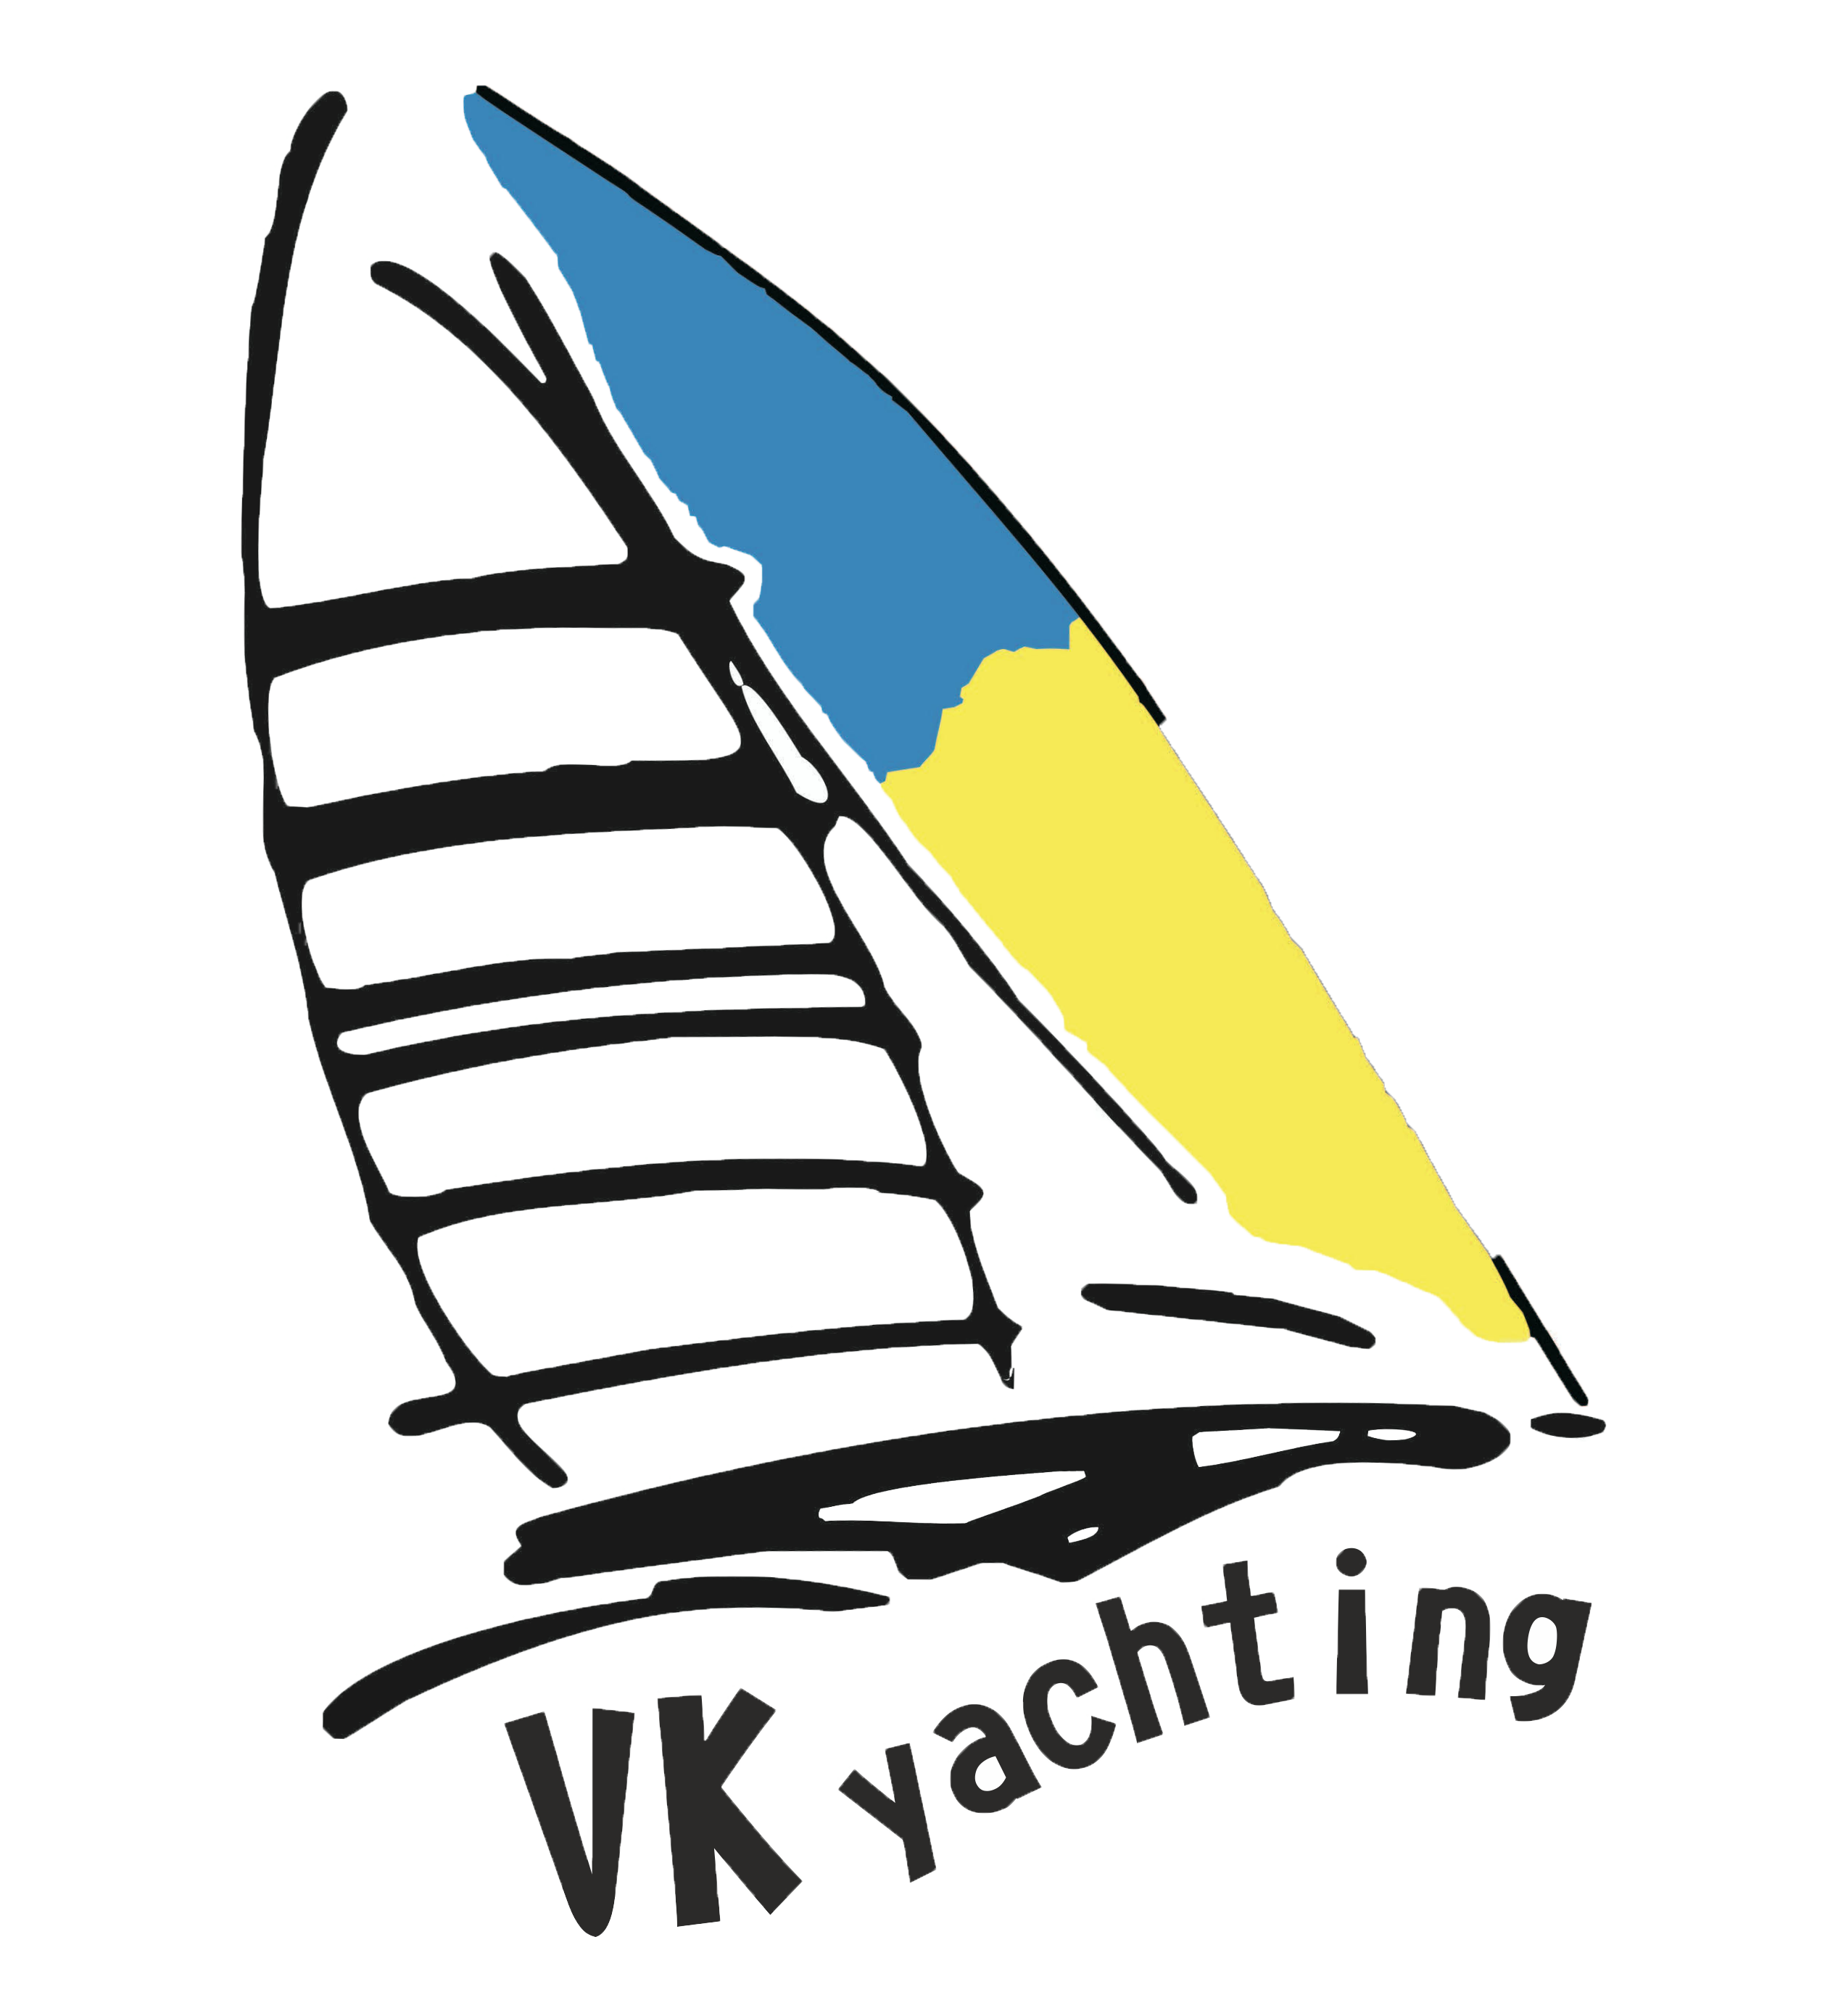 VKYachting